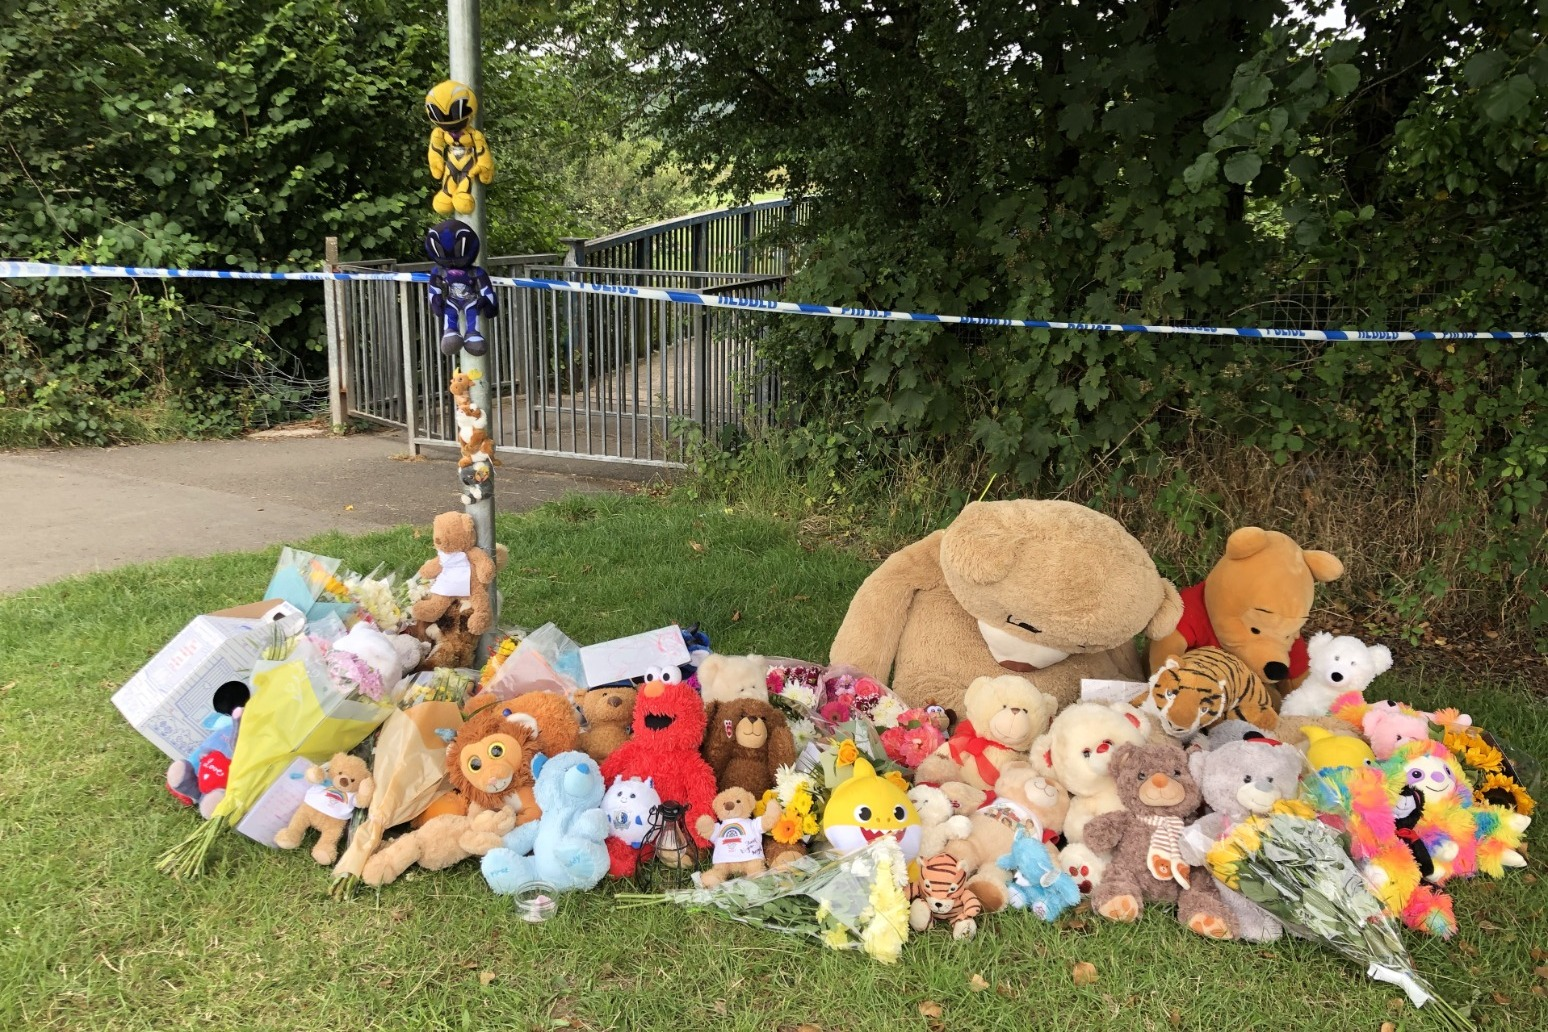 Tributes to boy, 5, found dead in river as three held on suspicion of murder